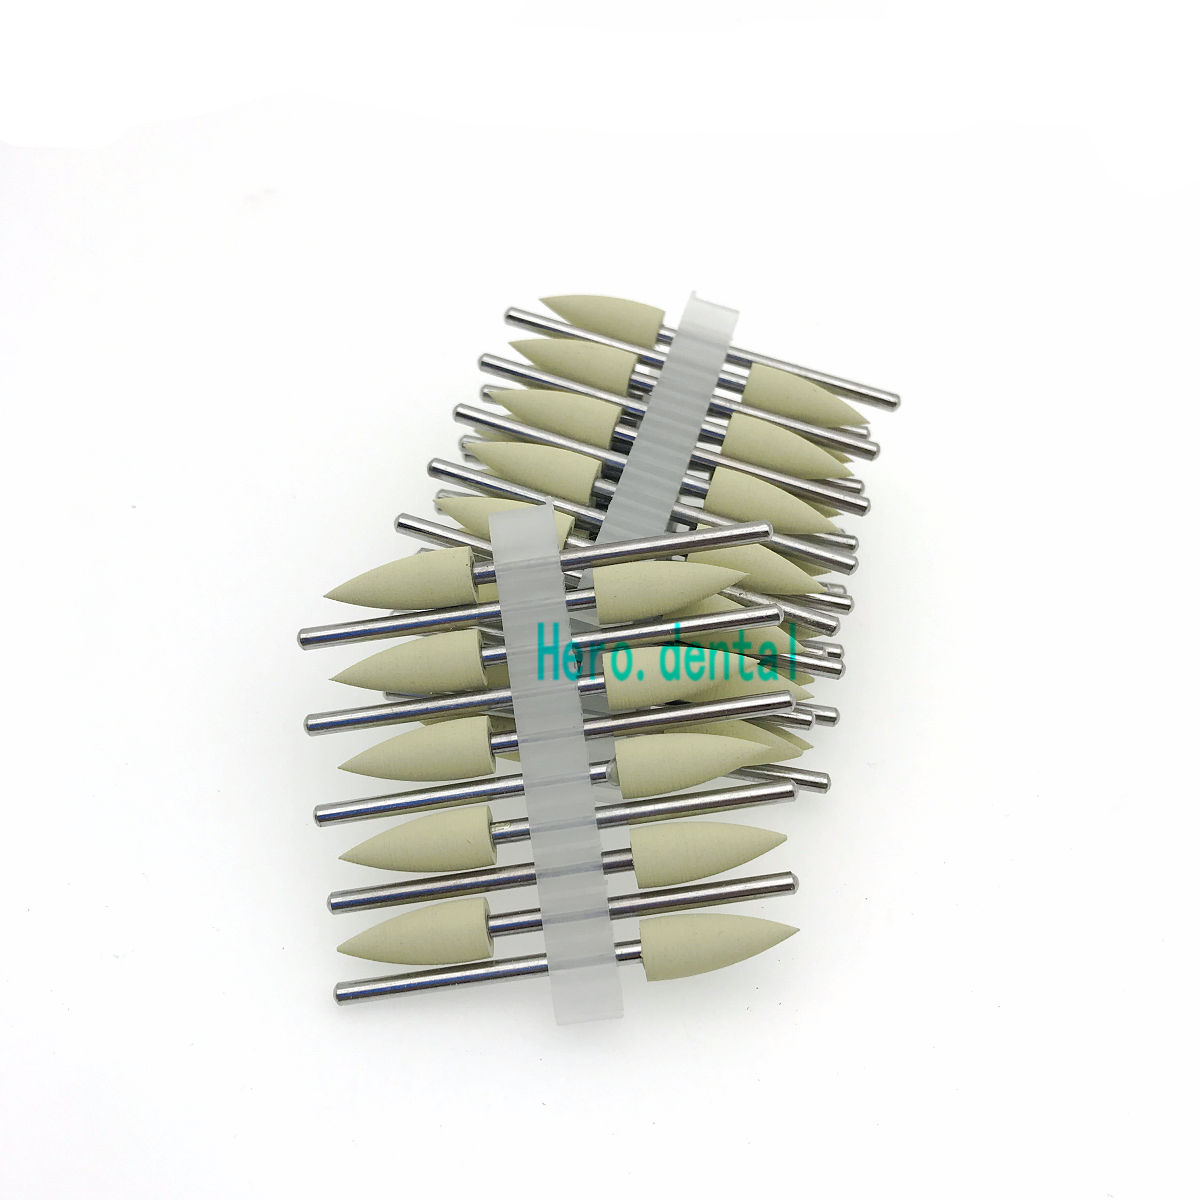 Type 406 Dental Silicone Rubber Resin Base Hidden Denture Polishing Burs 50pcs